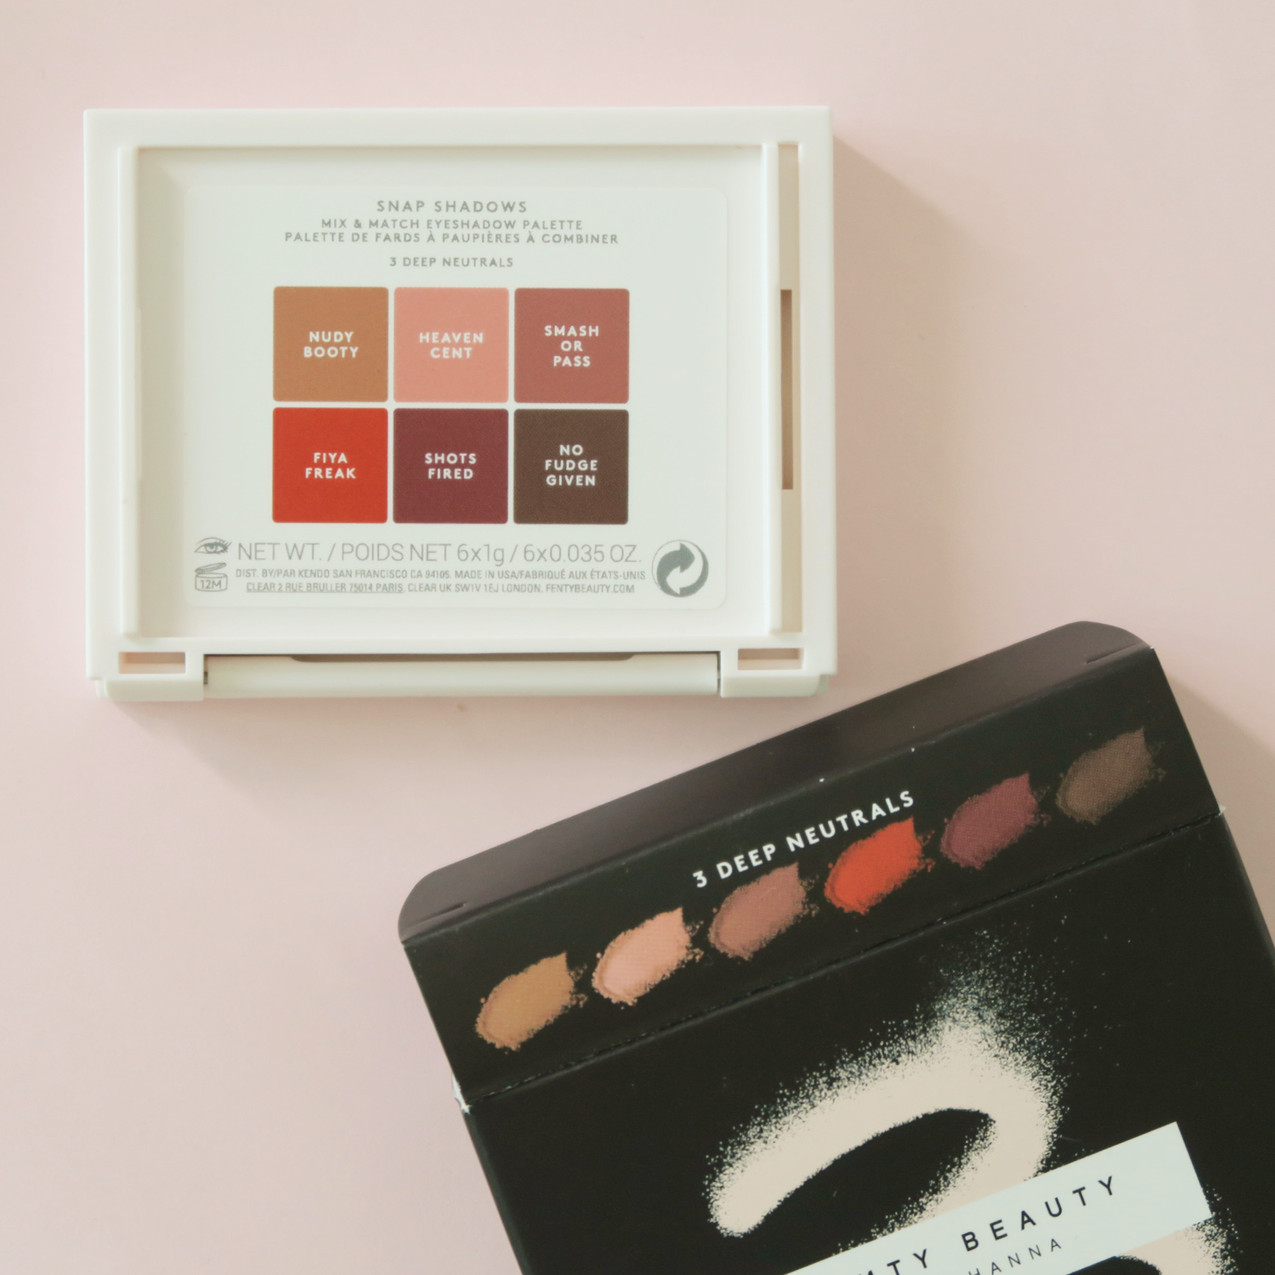 Fenty Beauty Snap Shadows Review